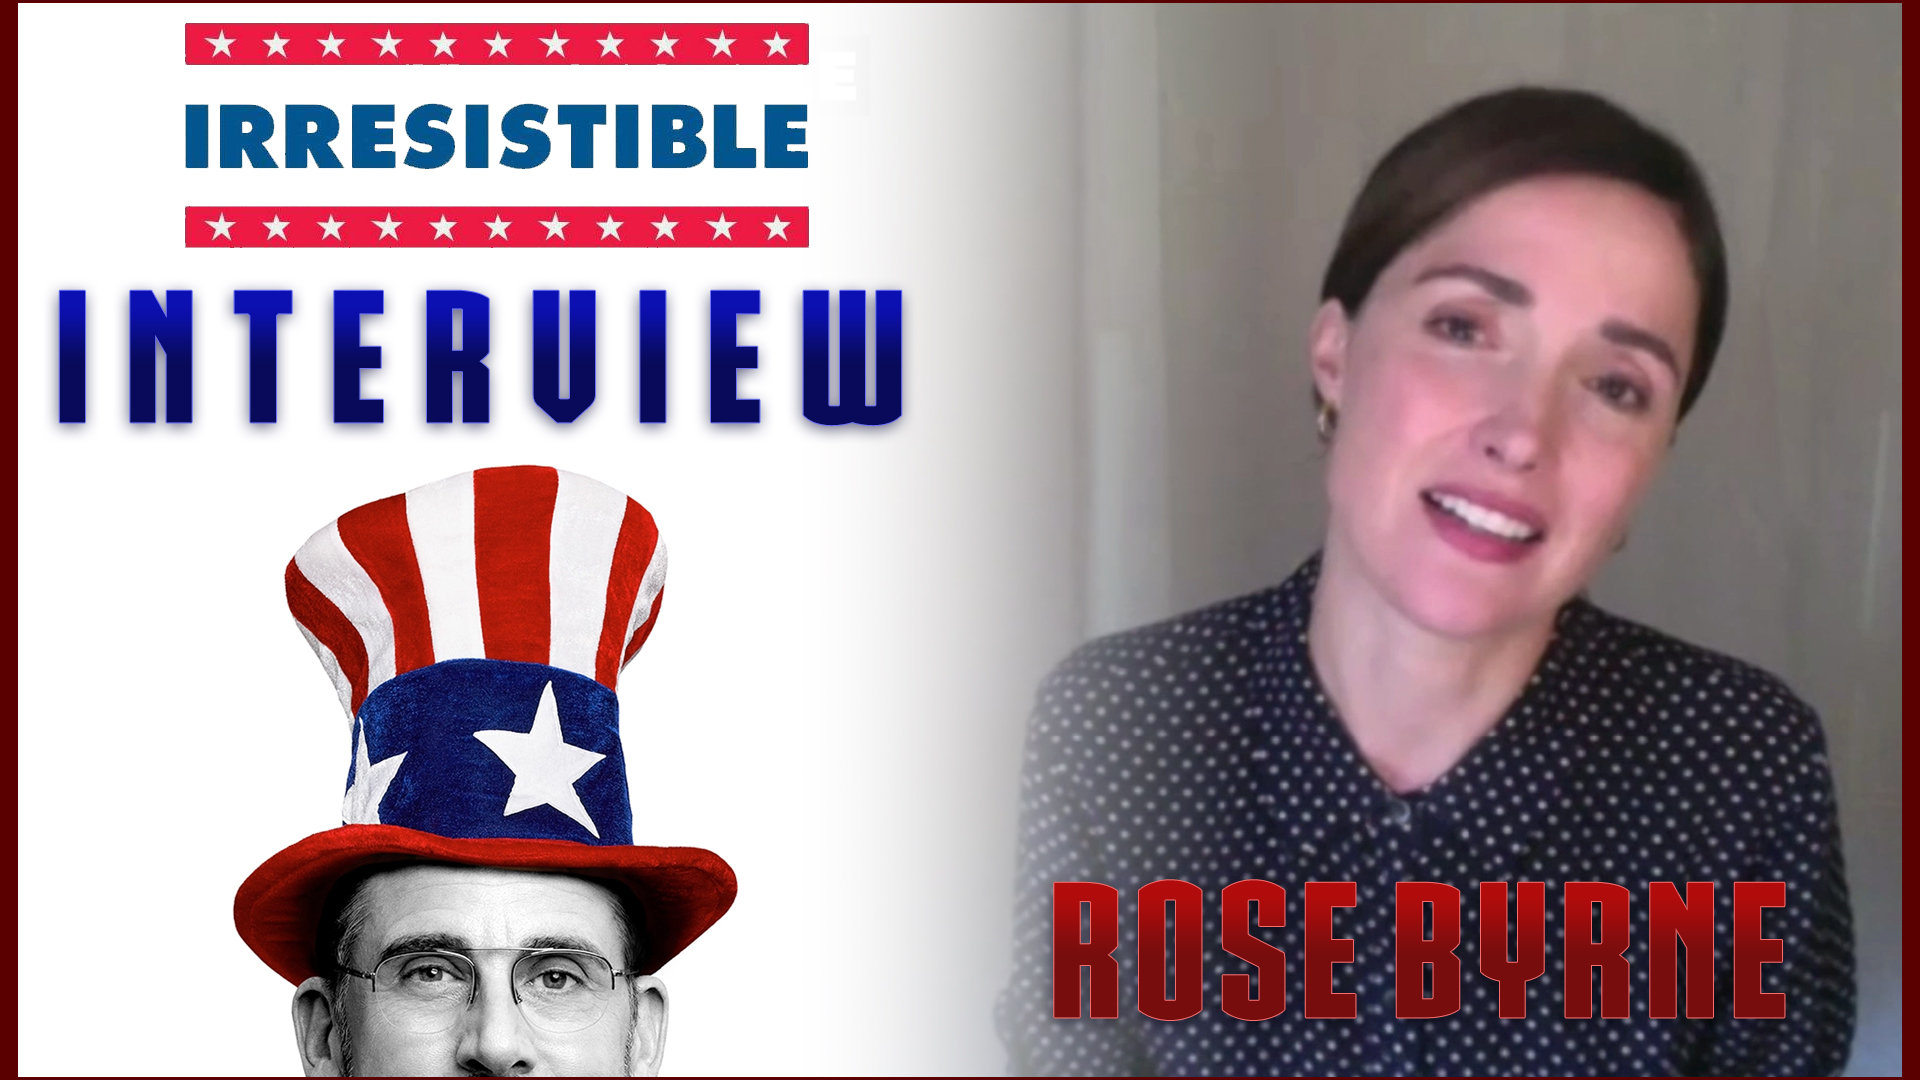 CS Video: Irresistible Interview with Rose Byrne